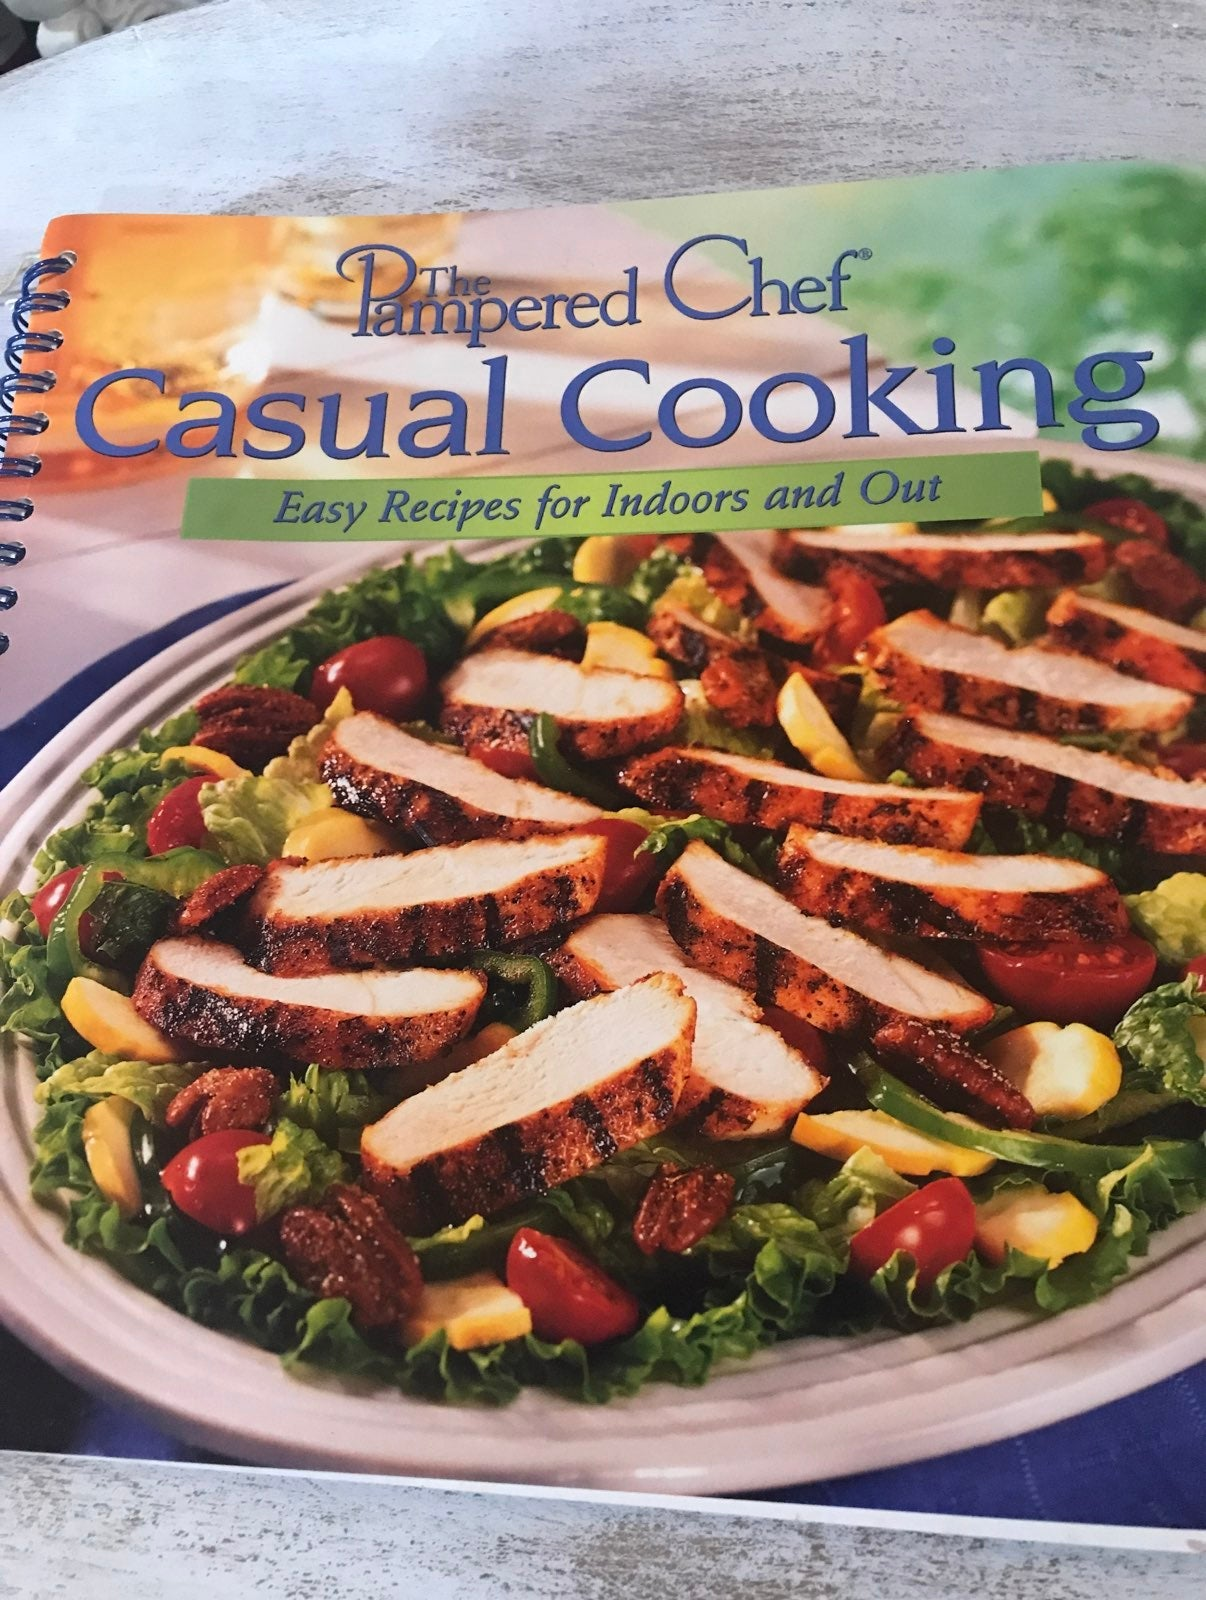 Cookbook the pampered chef